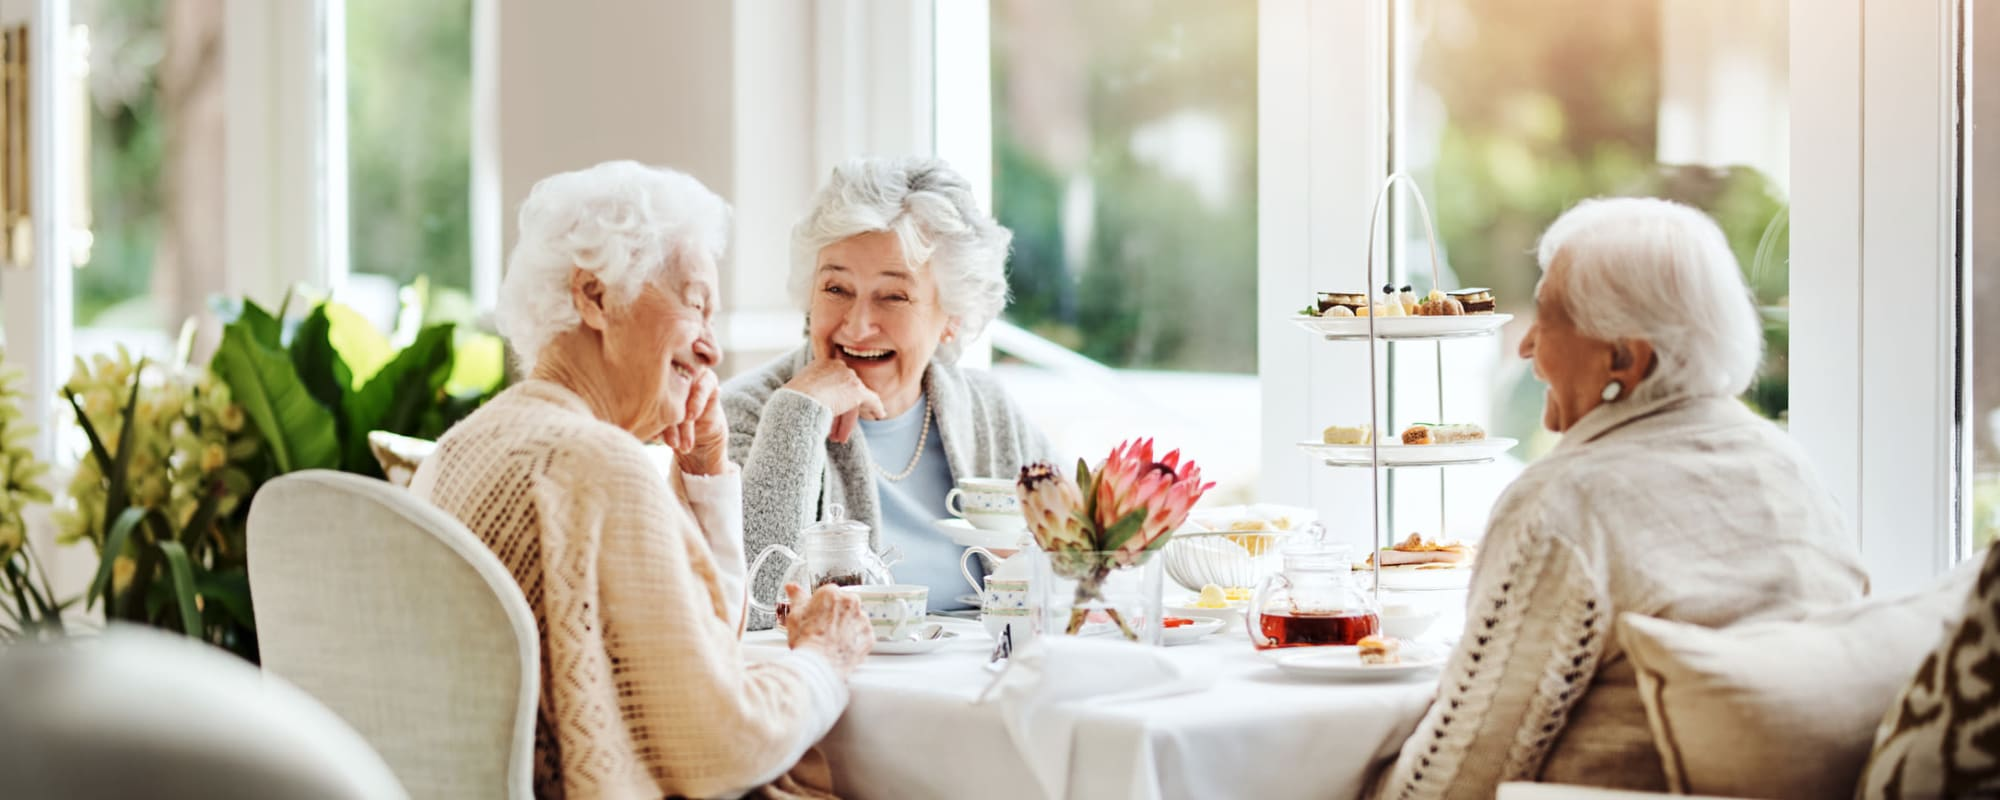 Memory care at The Springs Living in McMinnville, Oregon